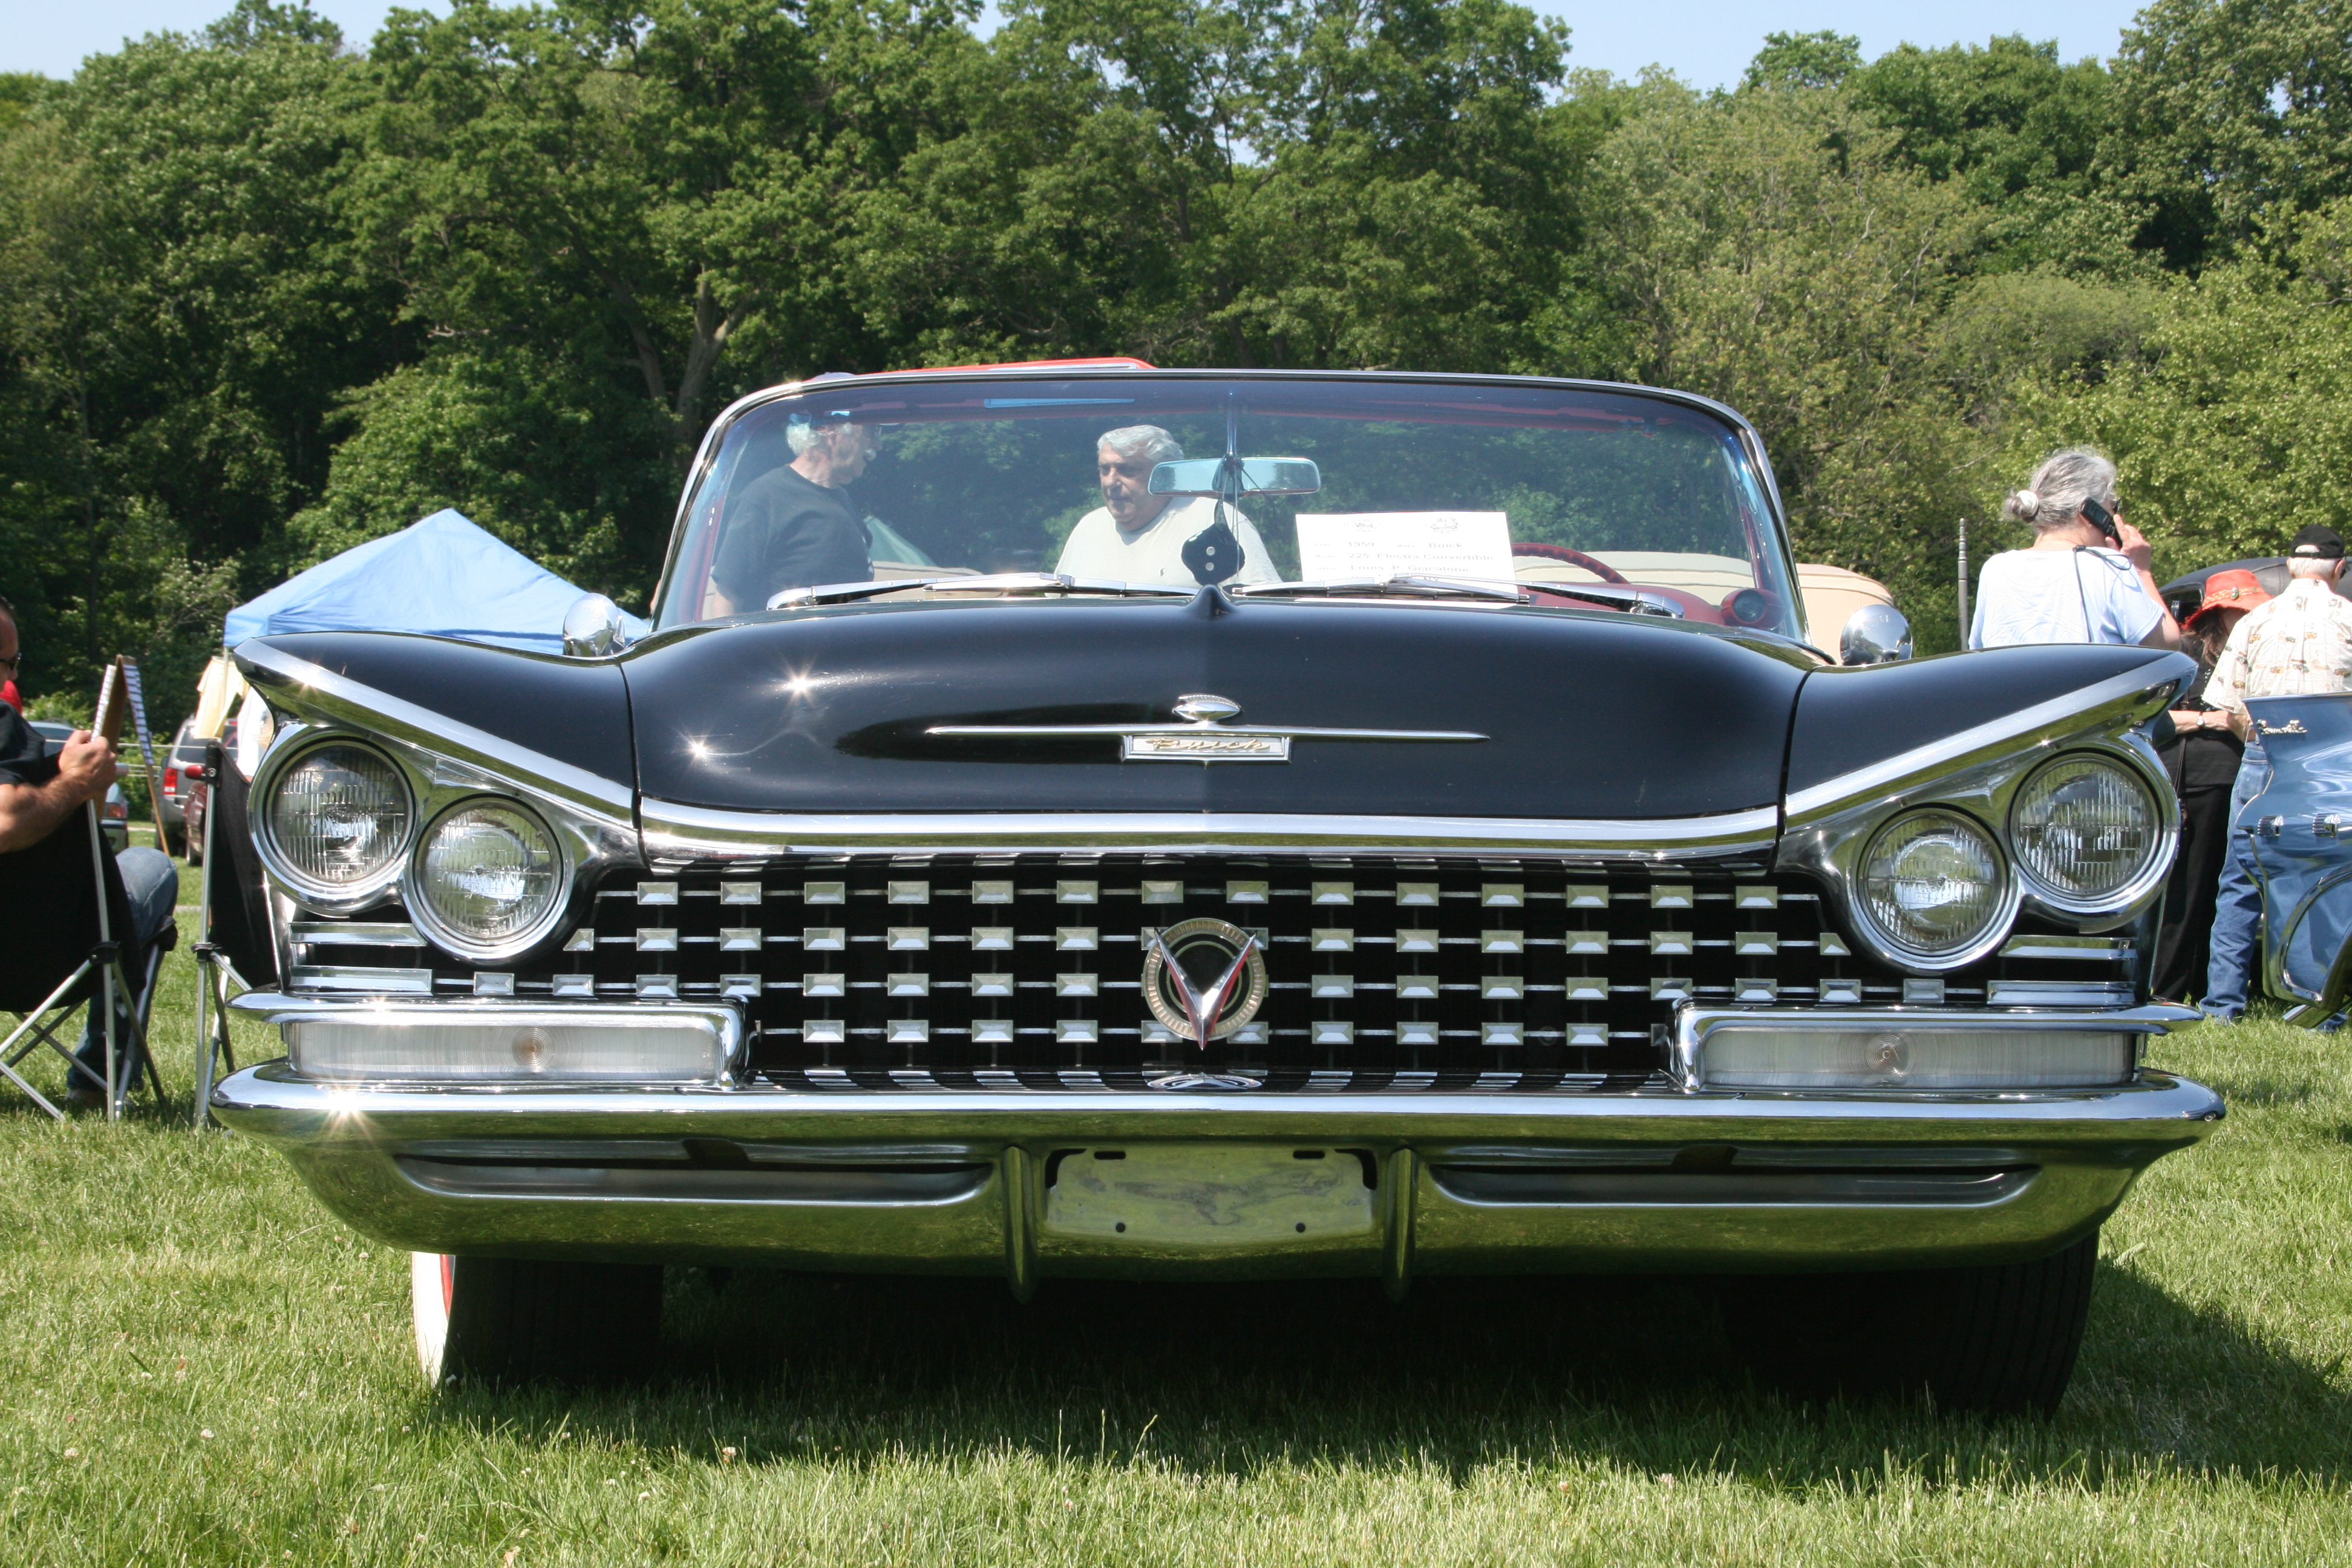 1959 lincoln continental convertible submited images pic2fly - The 1959 Electra